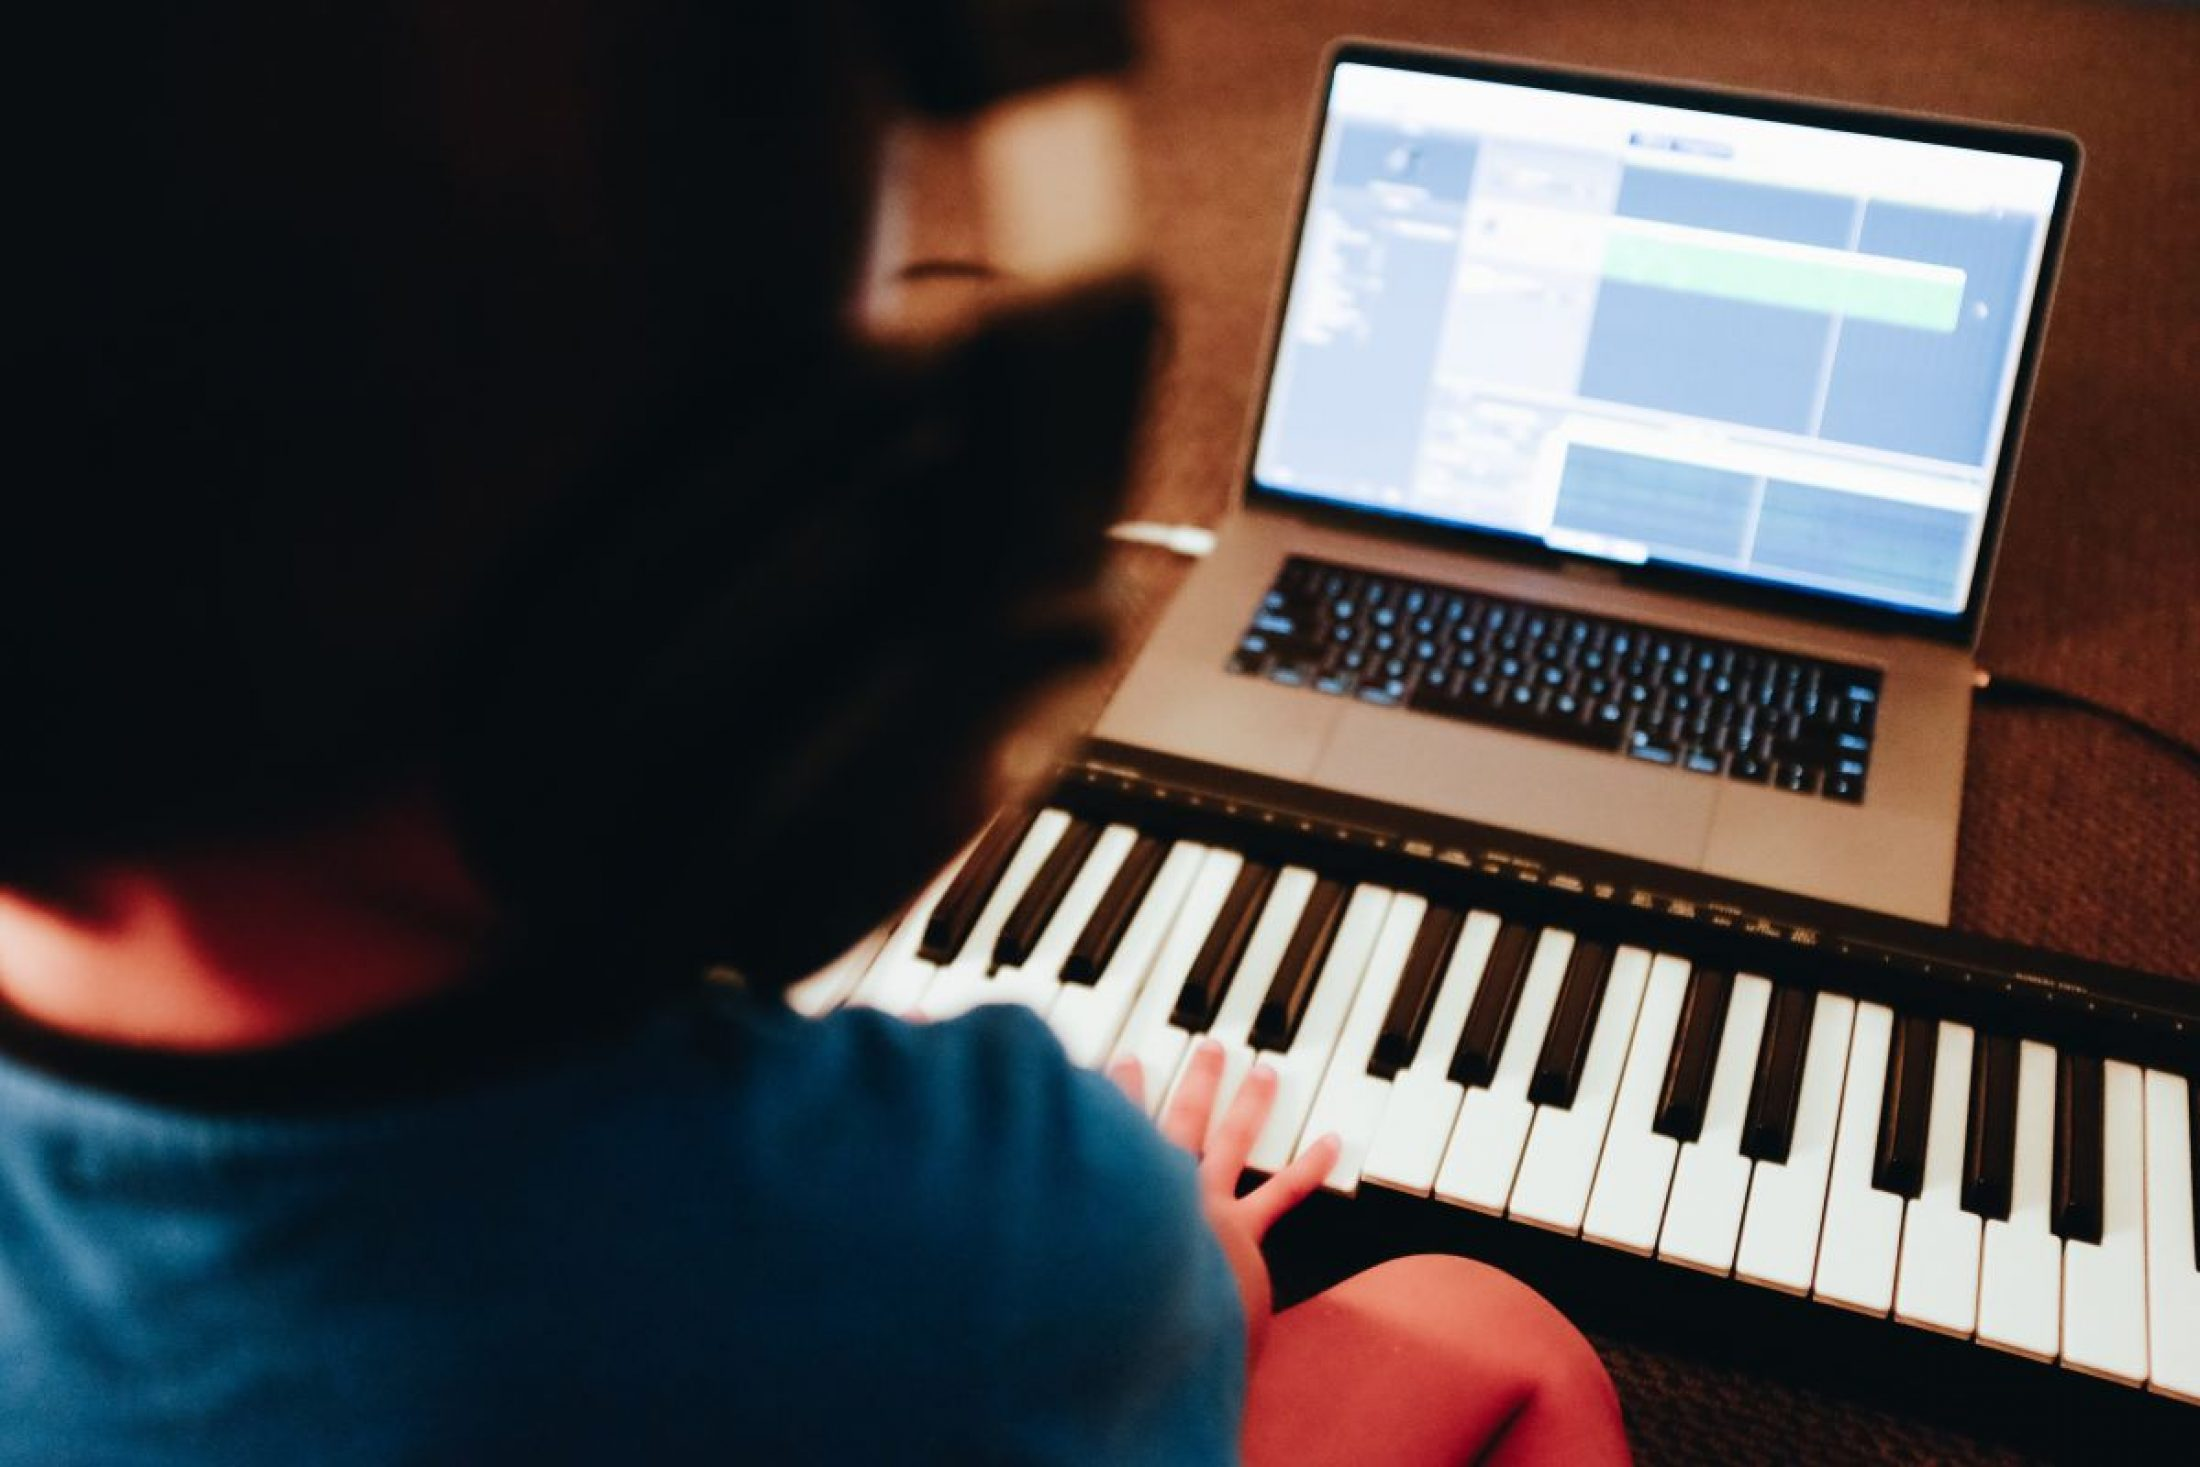 Online choirs and music workshops are a good way to connect with others